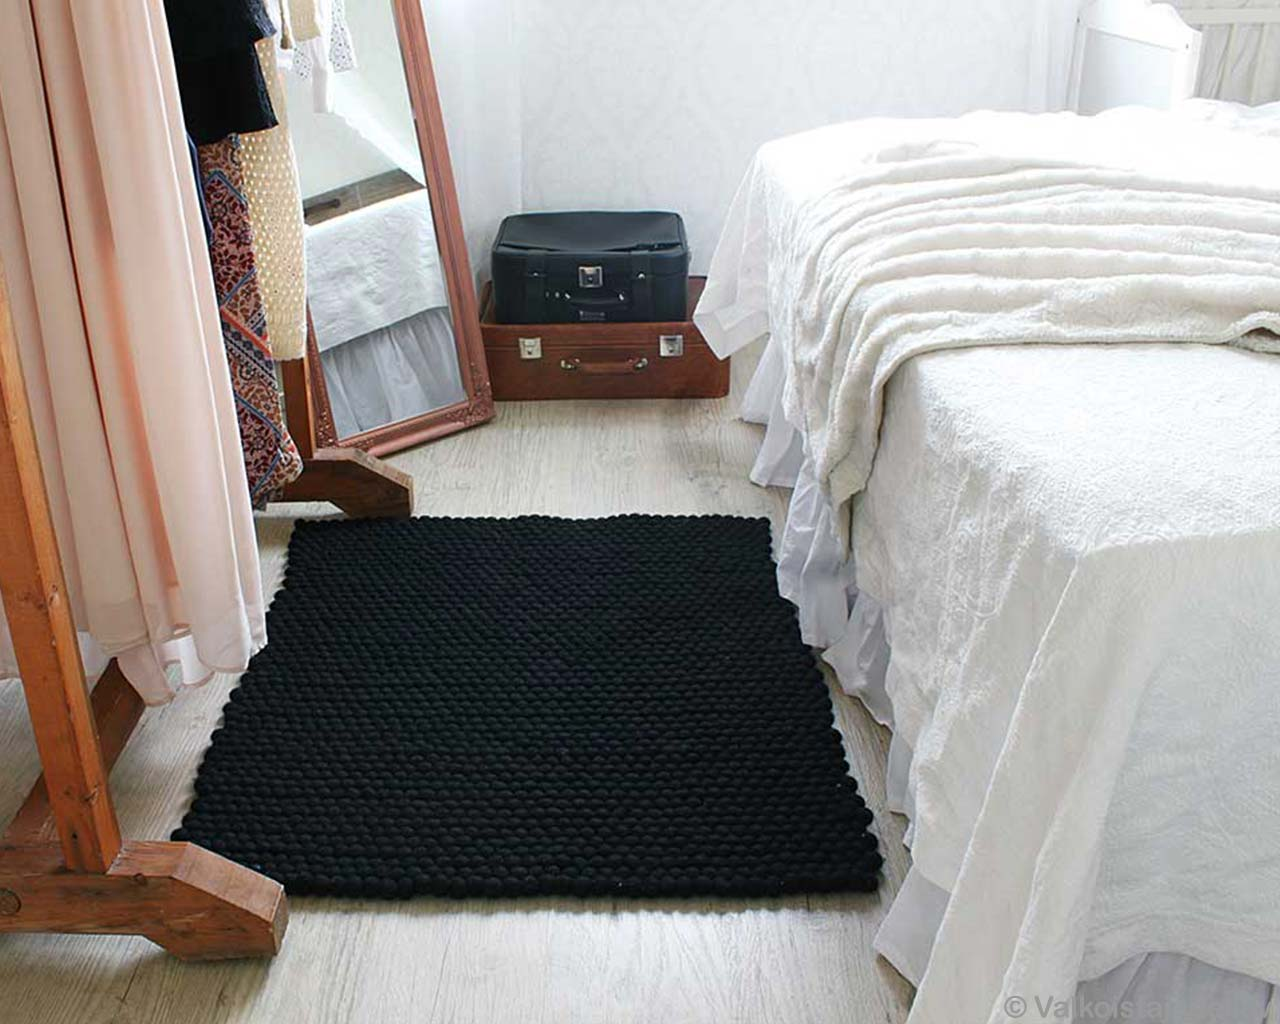 mirror black carpet suitcase white bed 1